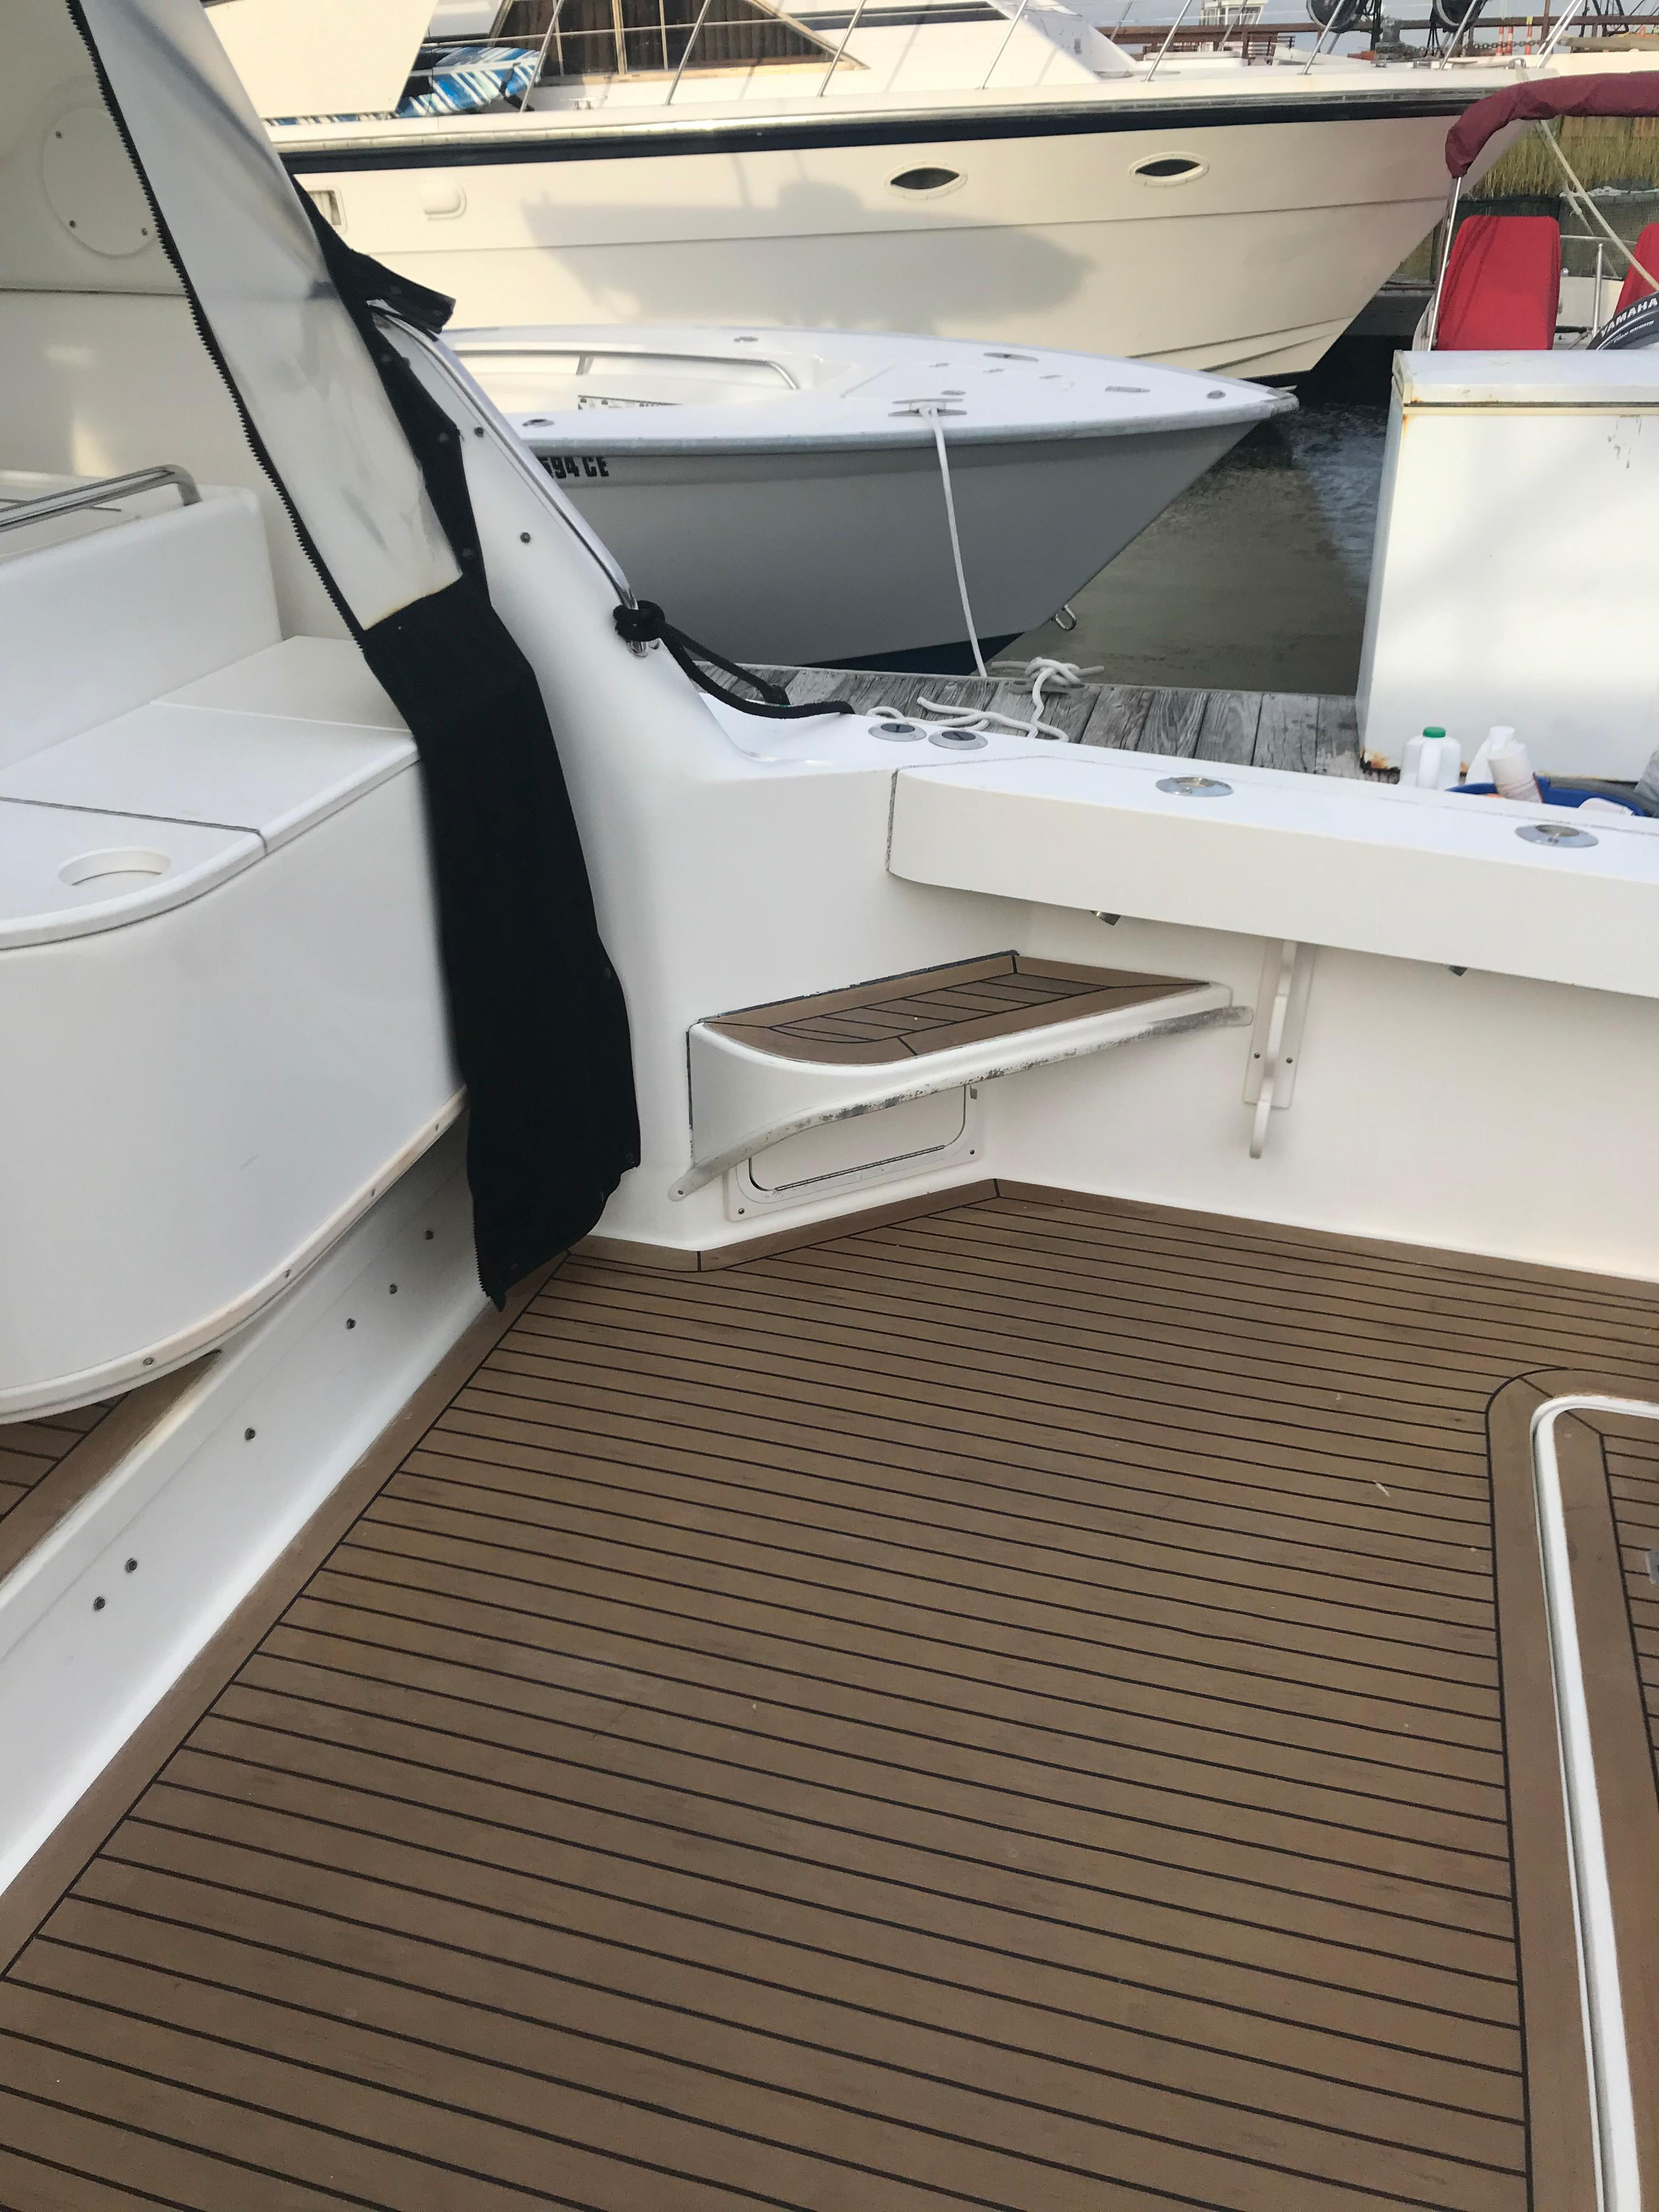 Sea Ray 370 Express Cruiser - Step to gunwale starboard side